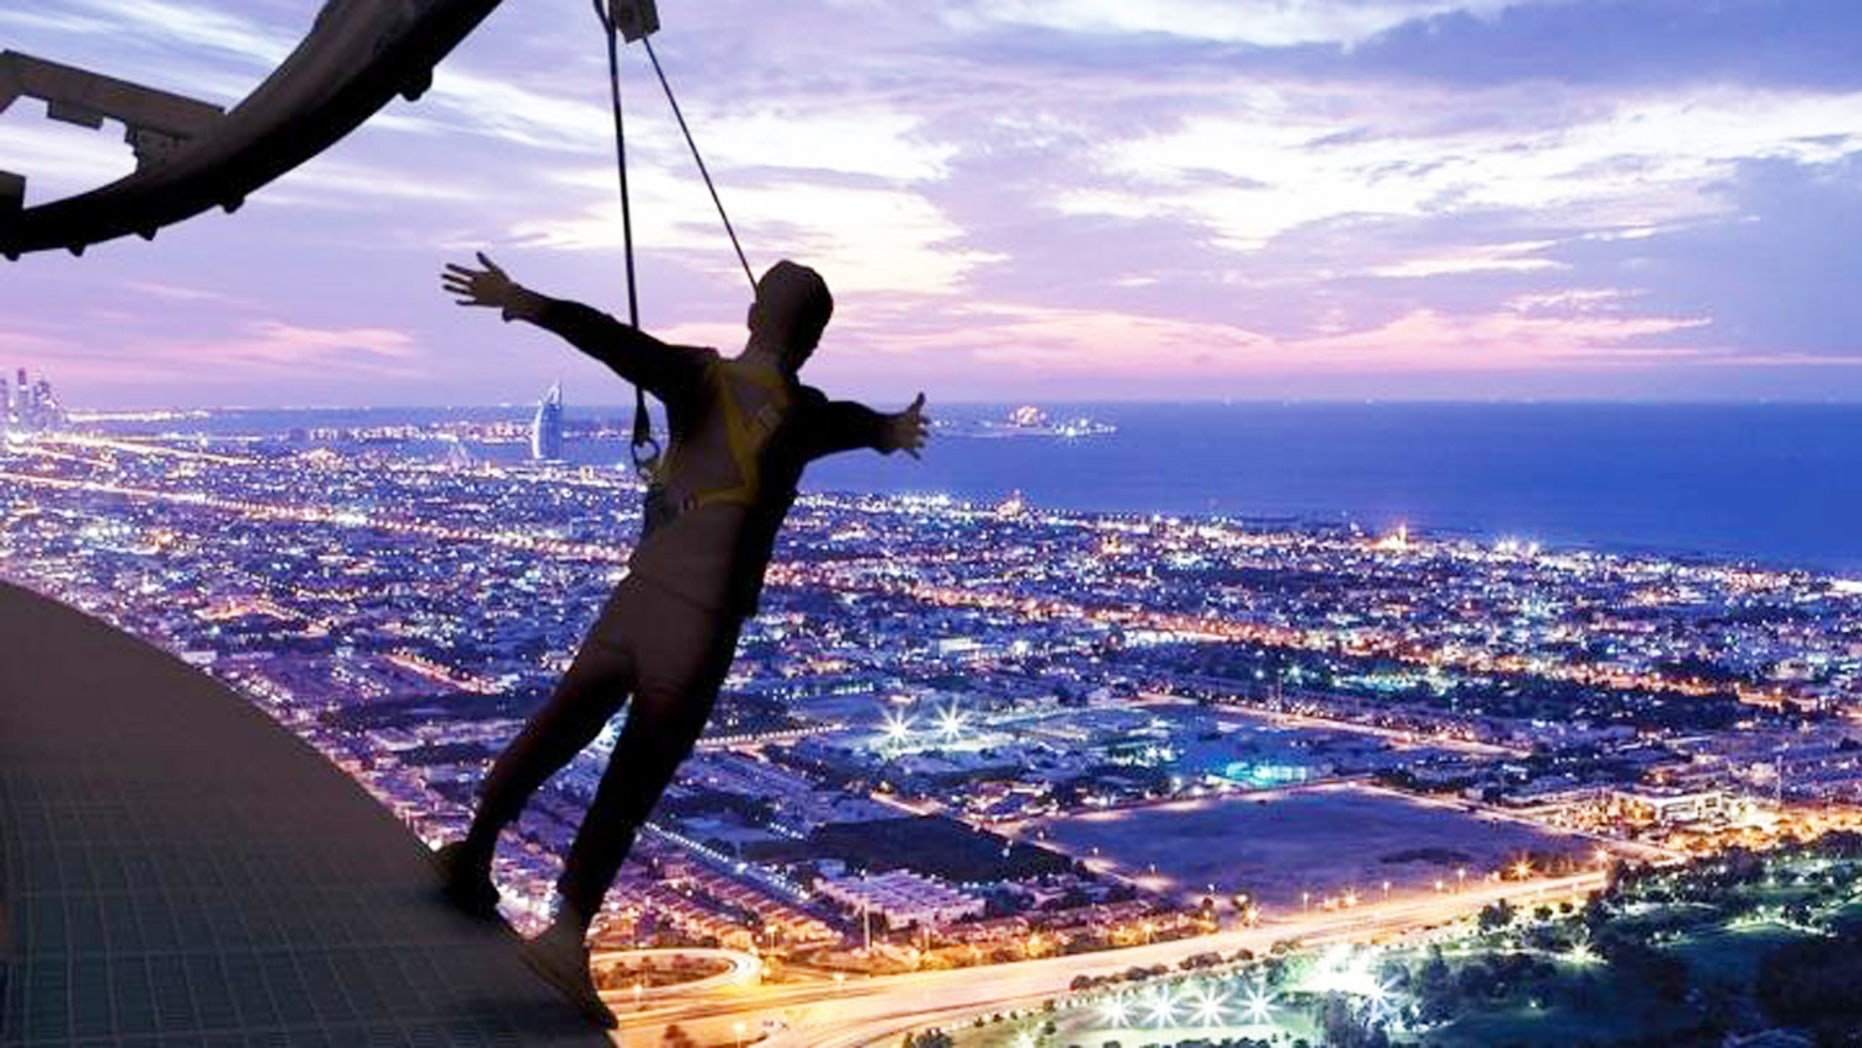 Dubai is calling all serious daredevils to just hang out-- 900 feet above the ground.